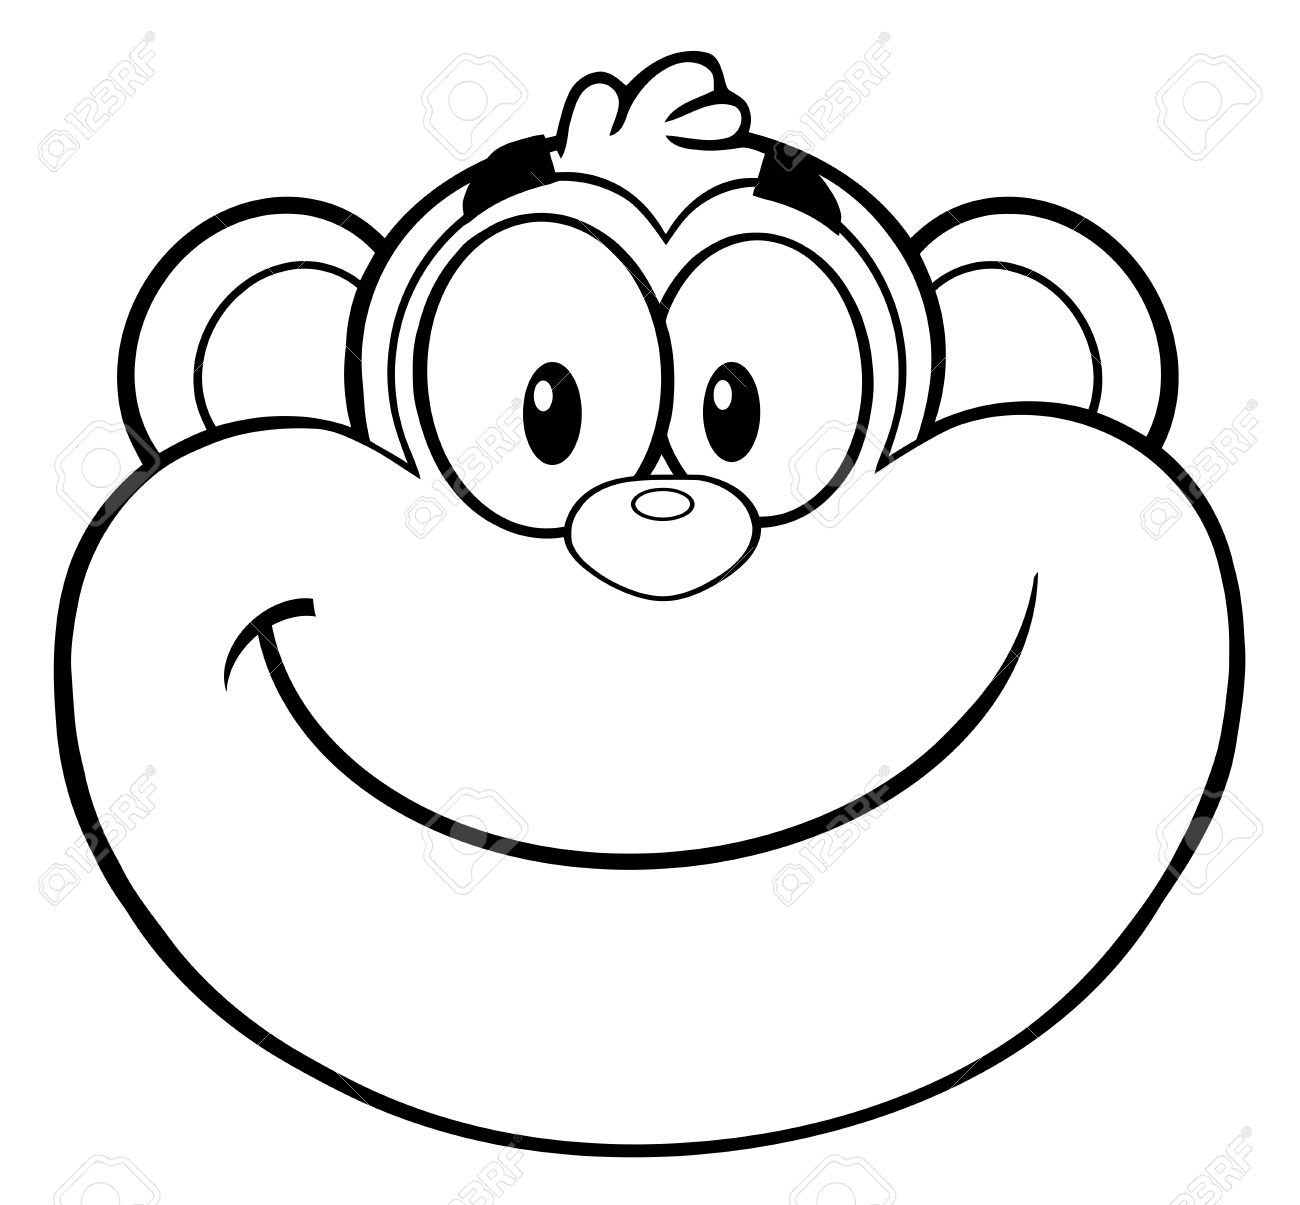 Black And White Smiling Monkey Face Cartoon Character Stock Photo Picture And Royalty Free Image Image 51008670